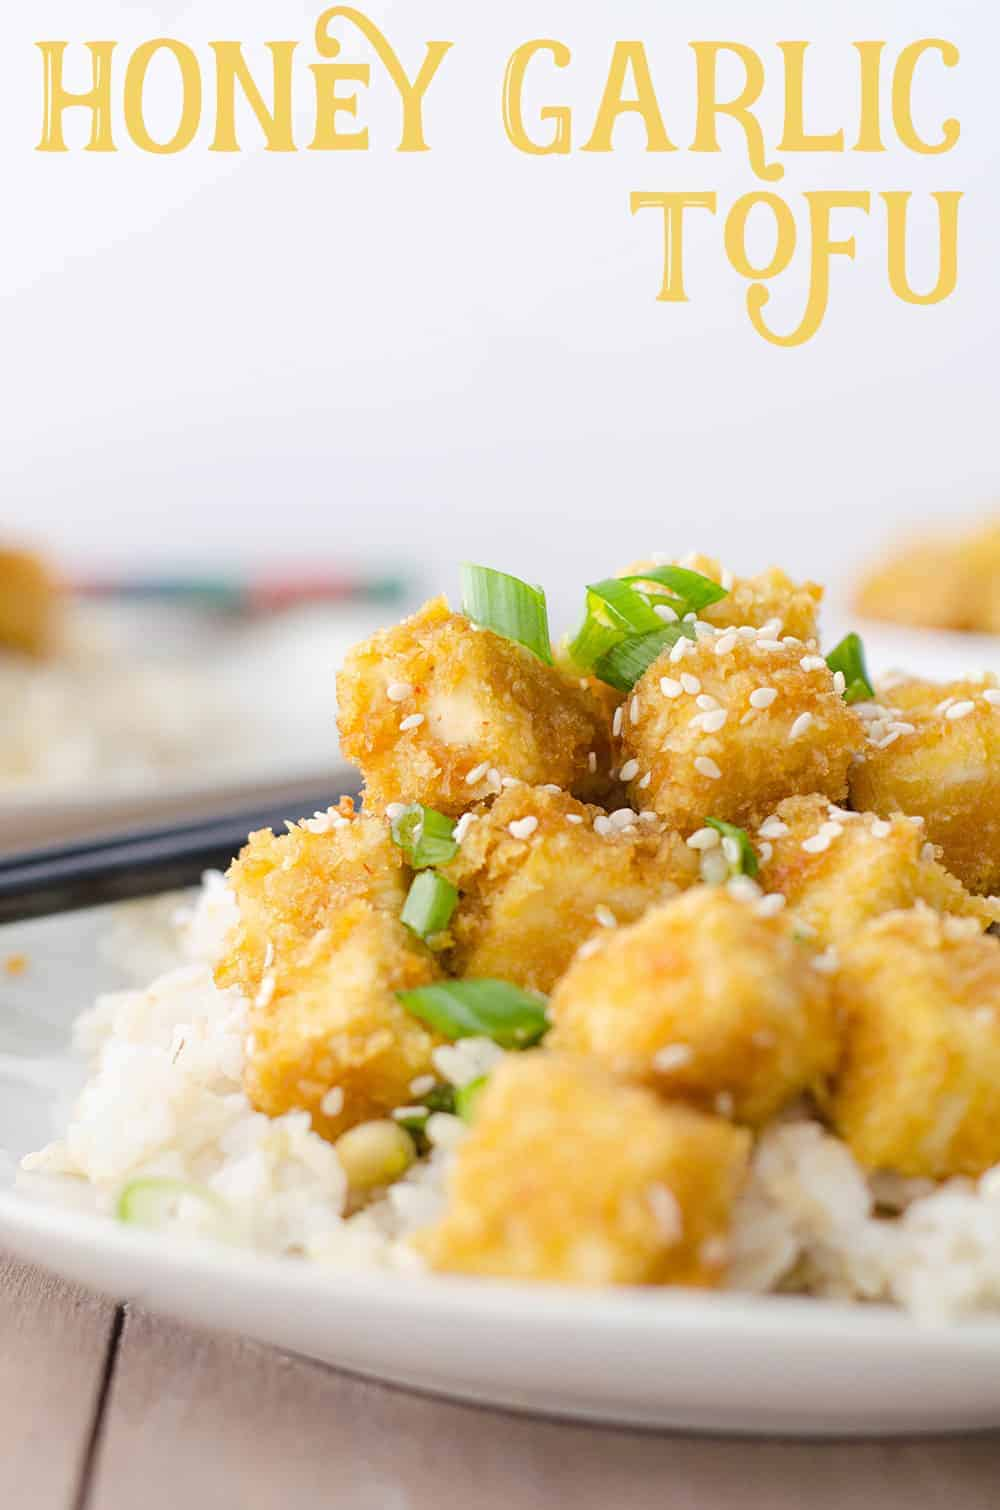 Honey Garlic Baked Tofu! Better than takeout! Crispy baked tofu nuggets in a sweet garlic sauce. Perfect over brown rice or steamed vegetables! Vegetarian and Gluten-Free.   www.delishknowledge.com